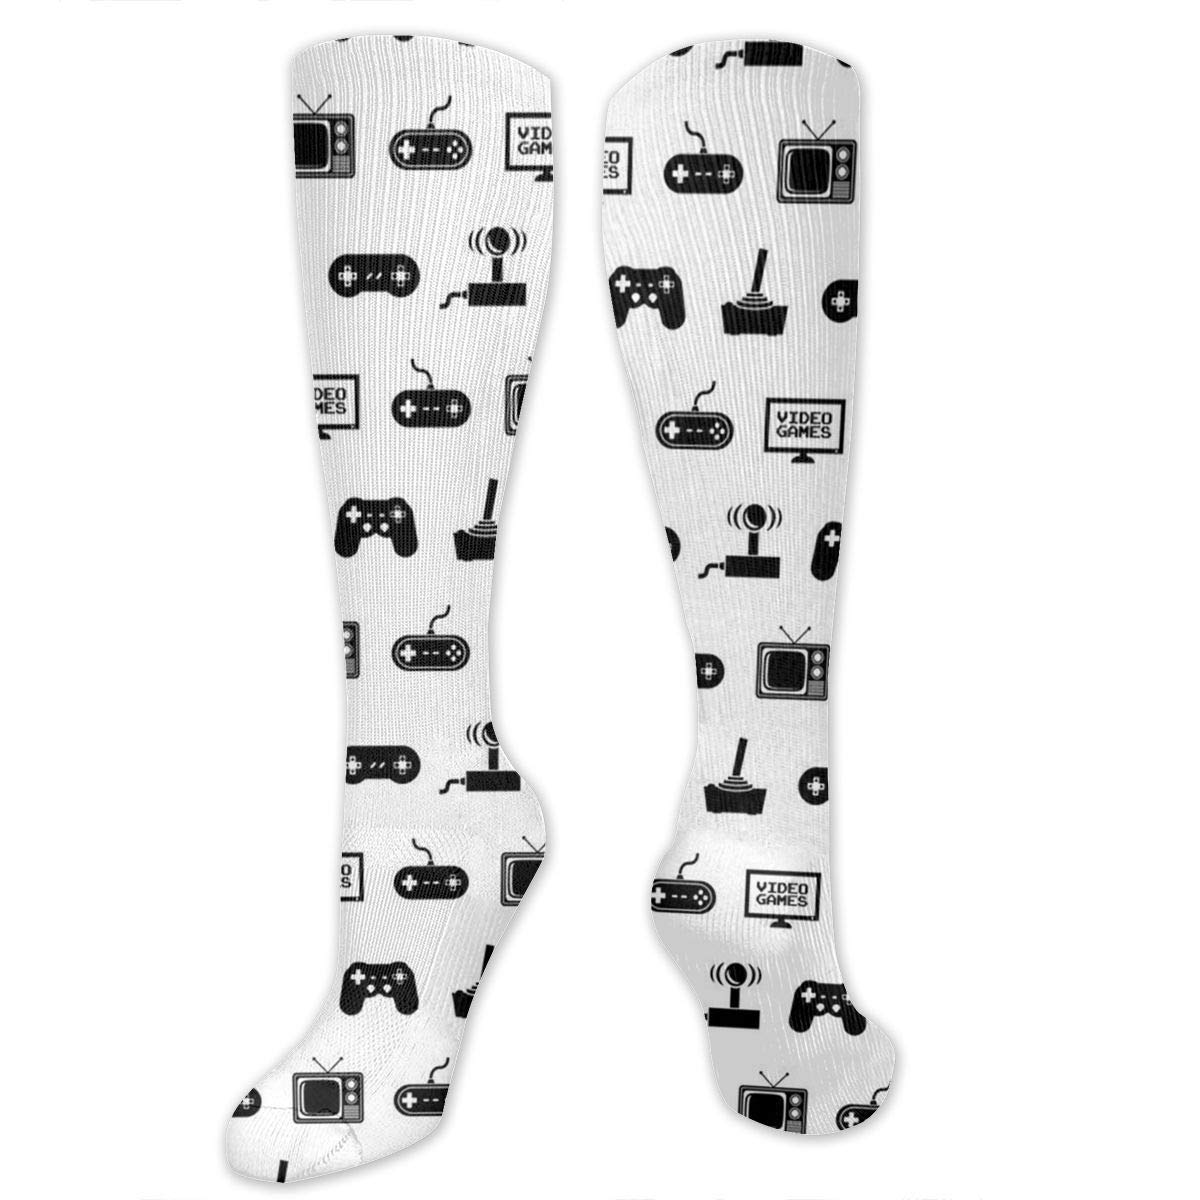 Amazon com: Video Games Compression Socks for Women and Men